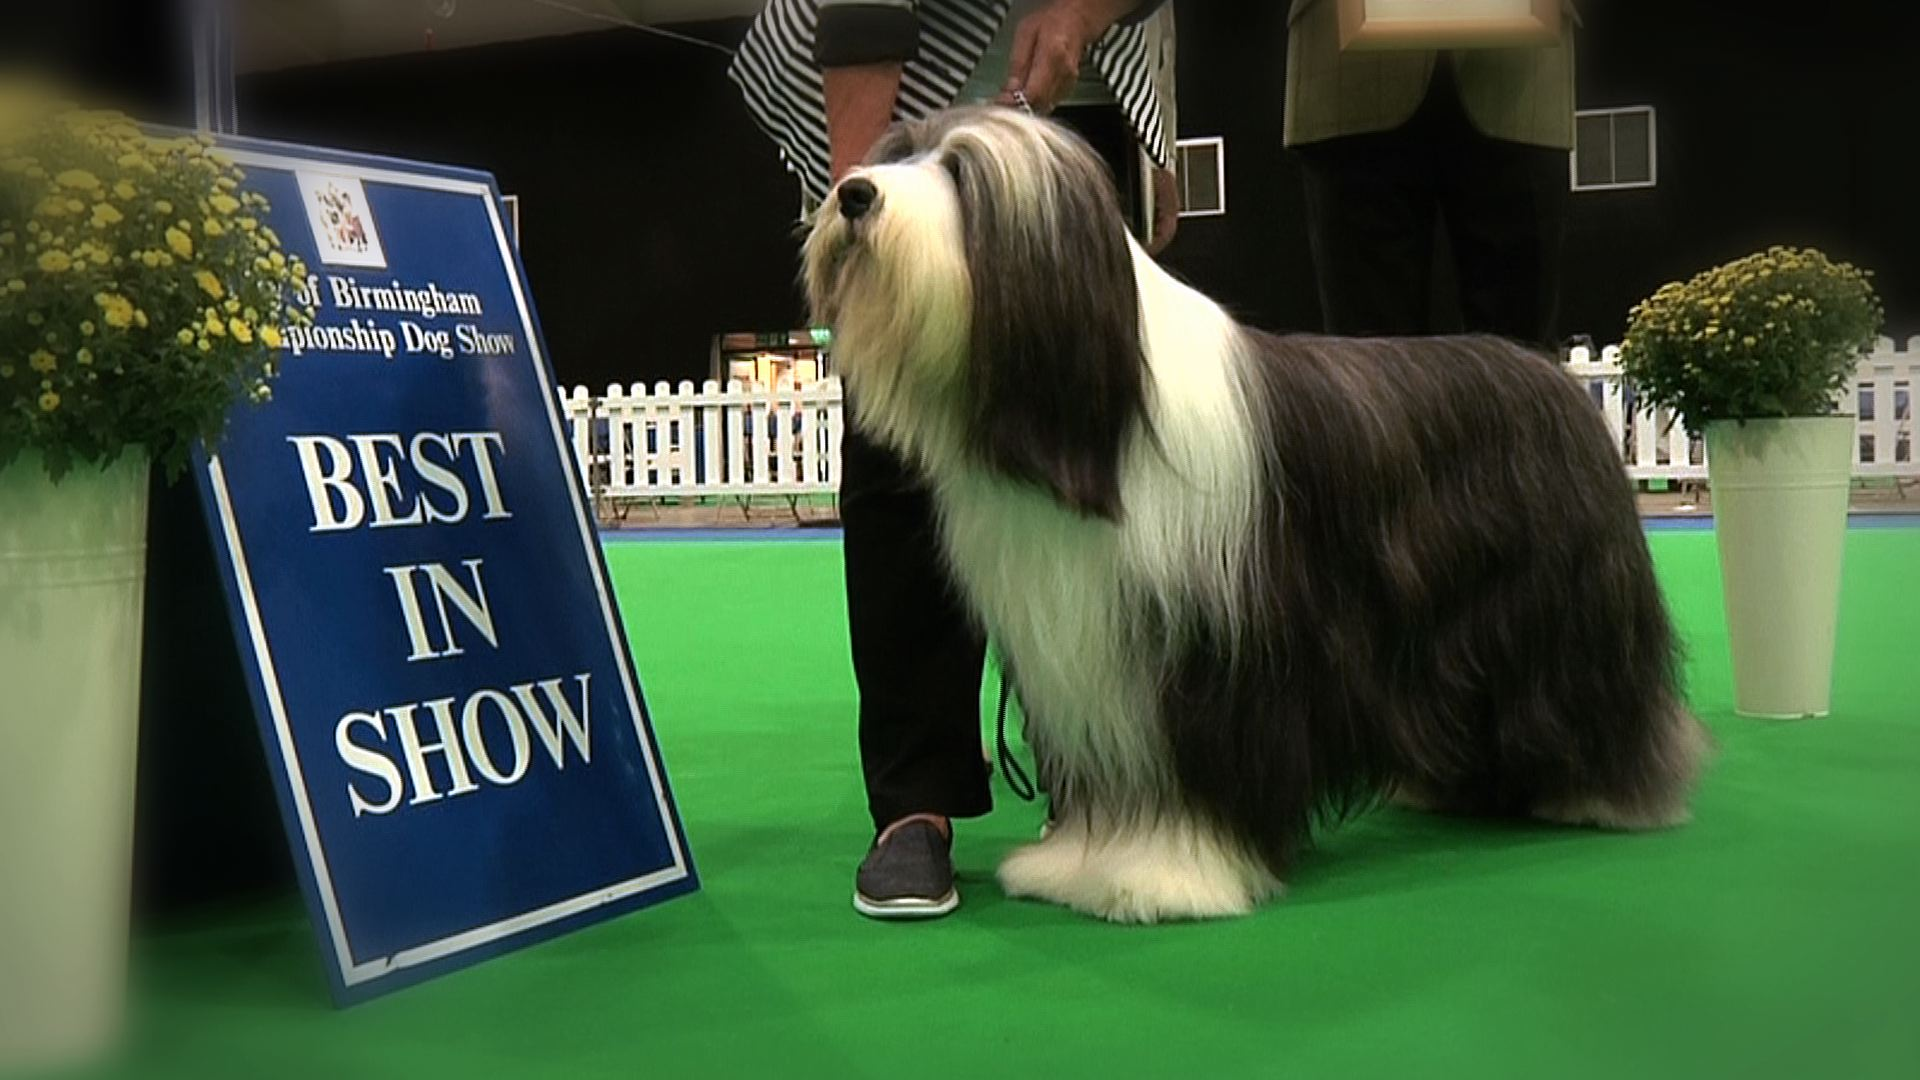 City of Birmingham 2016 - Best in Show